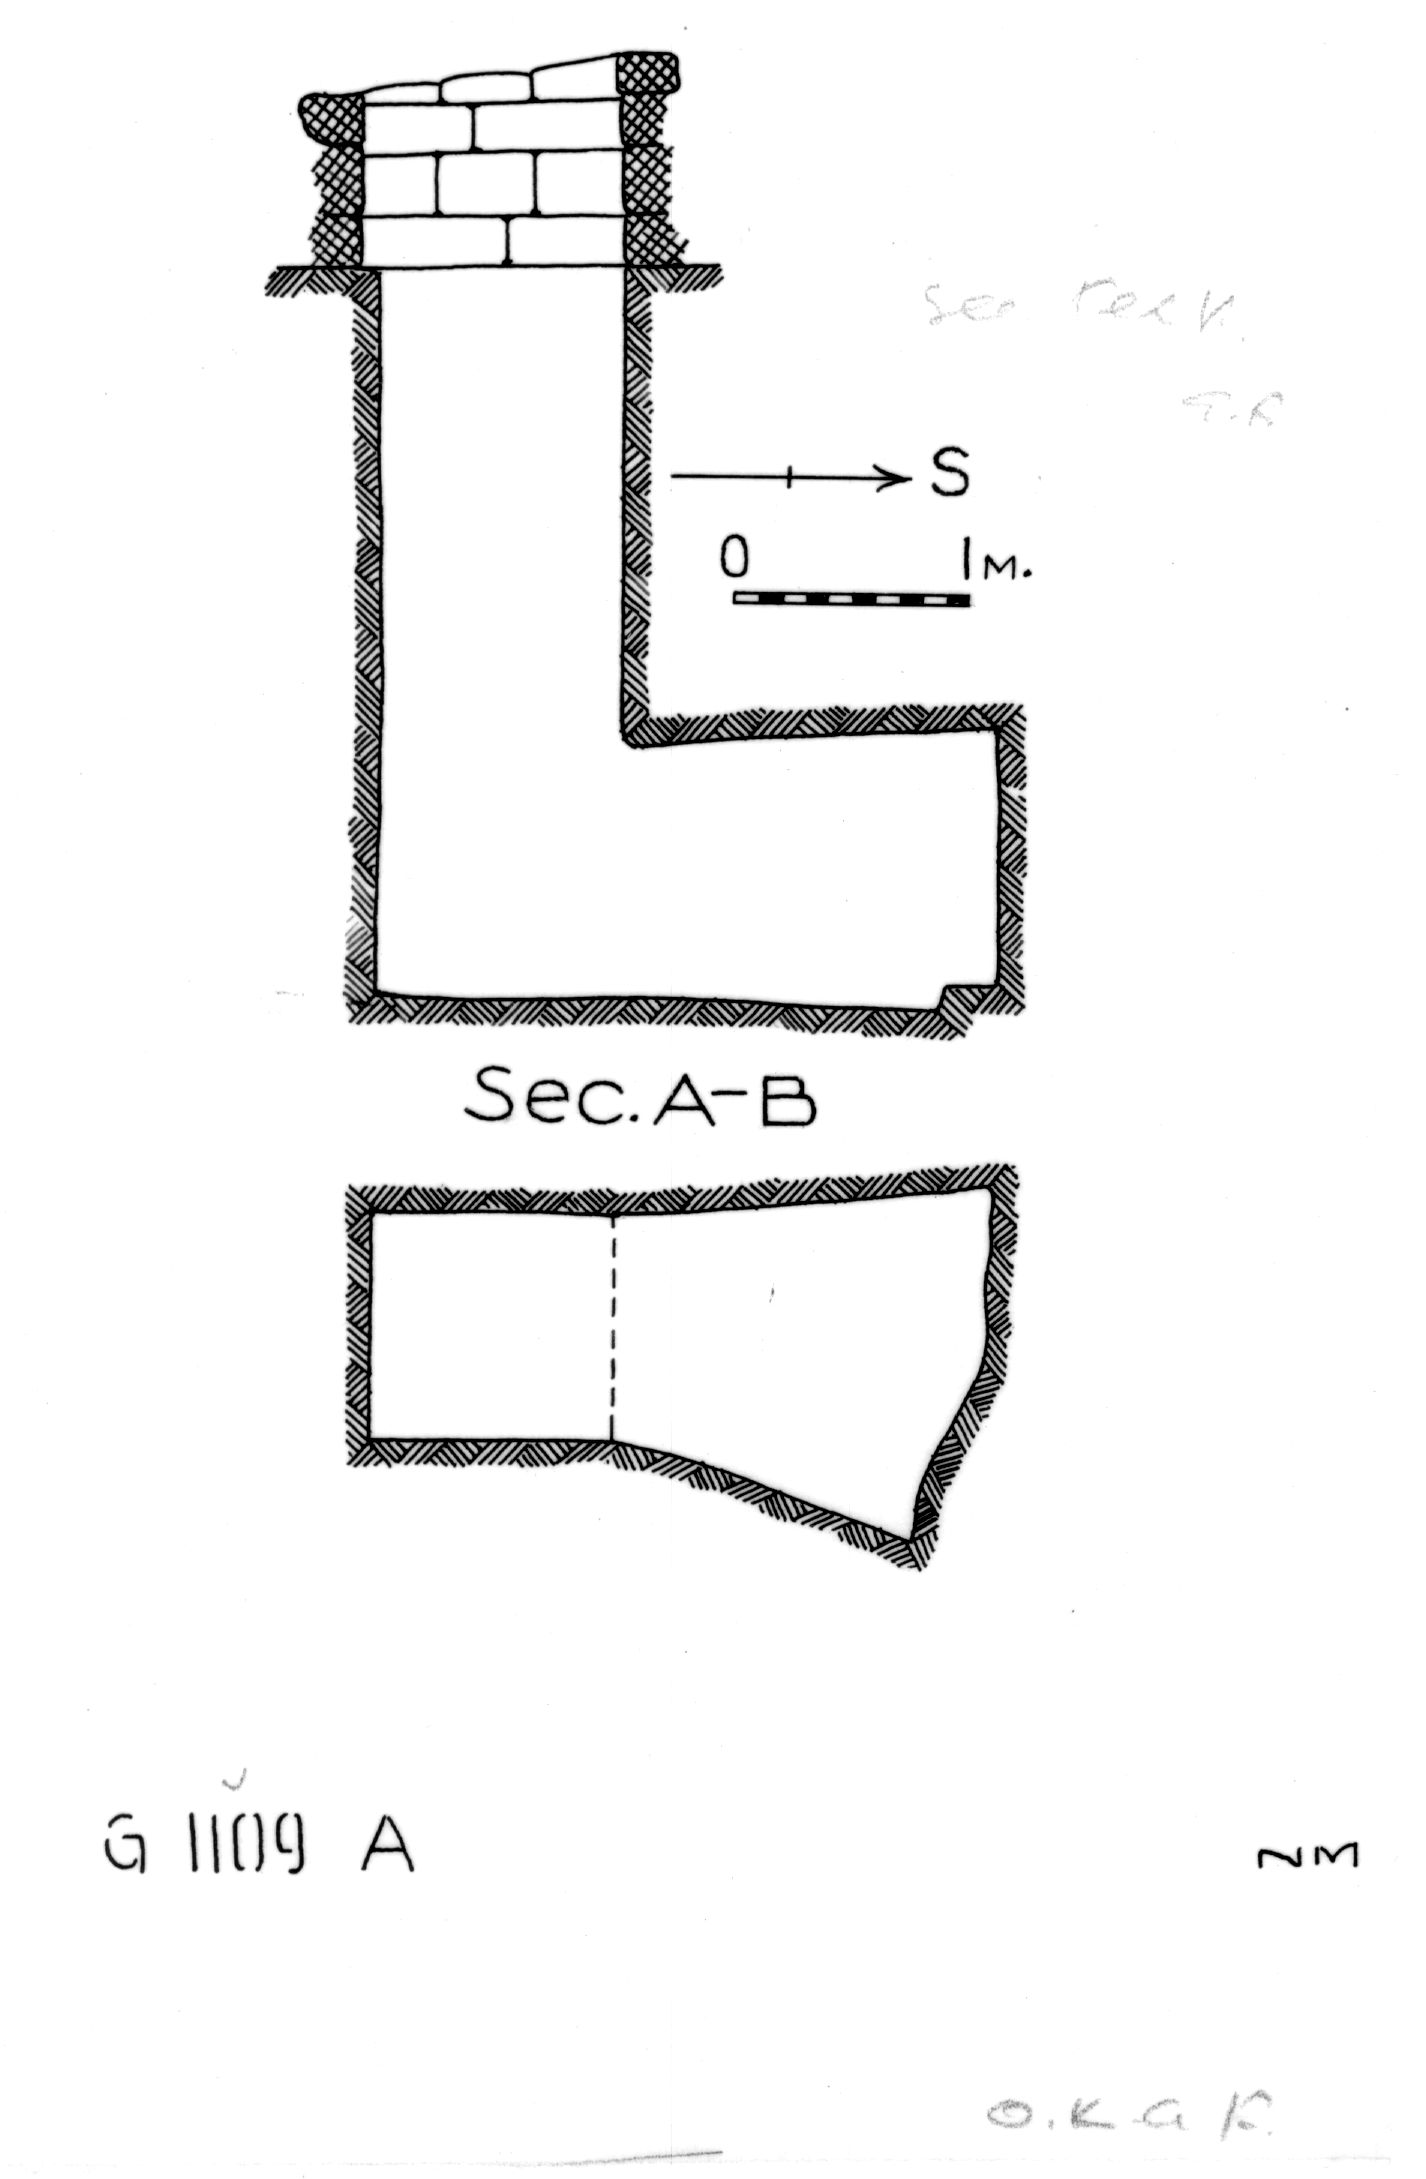 Maps and plans: G 1109, Shaft A